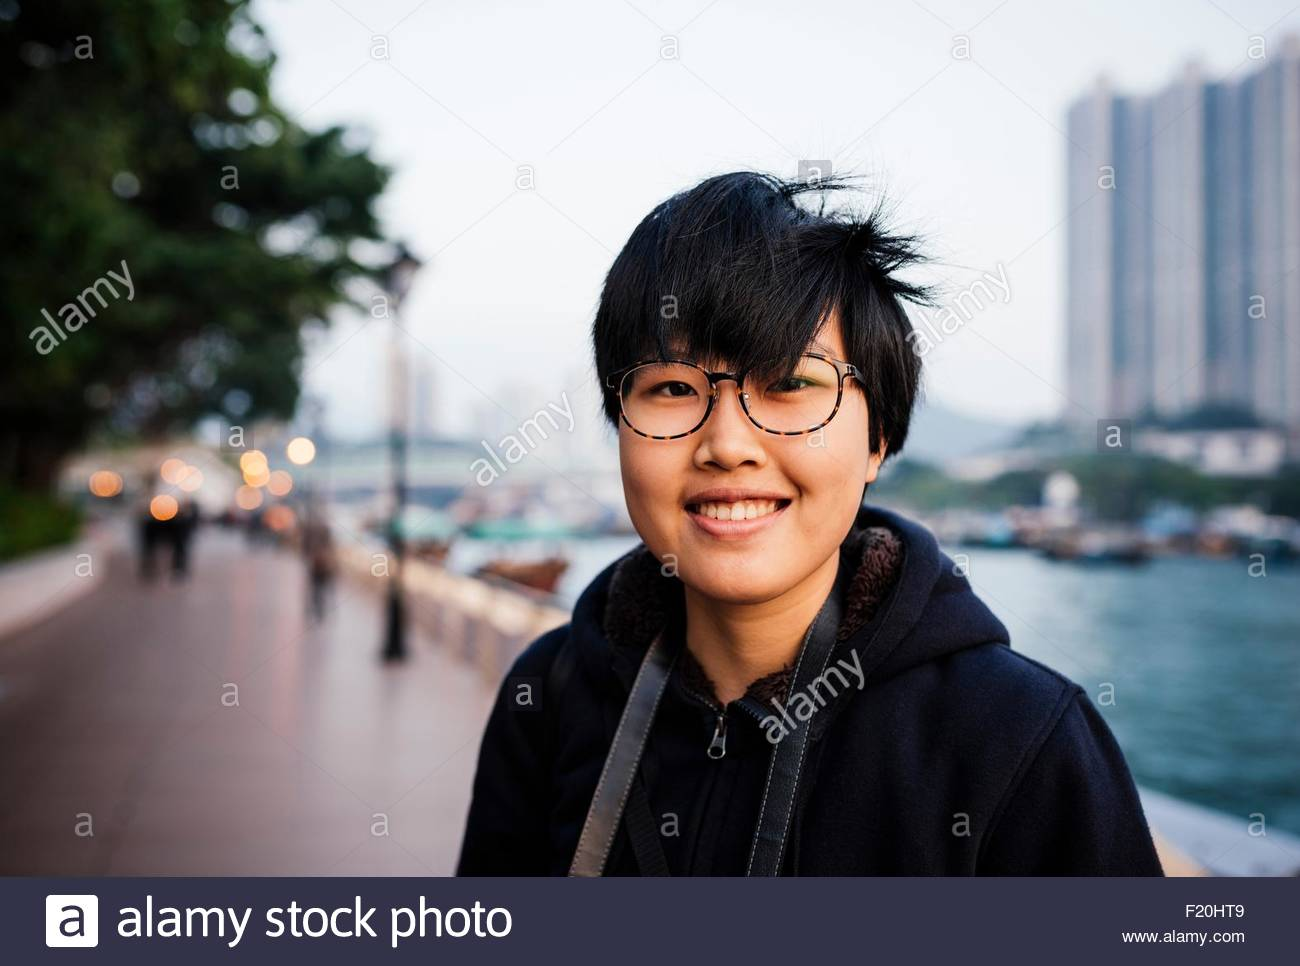 Portrait of mid adult woman with short hair wearing glasses, in front of water, looking at camera - Stock Image